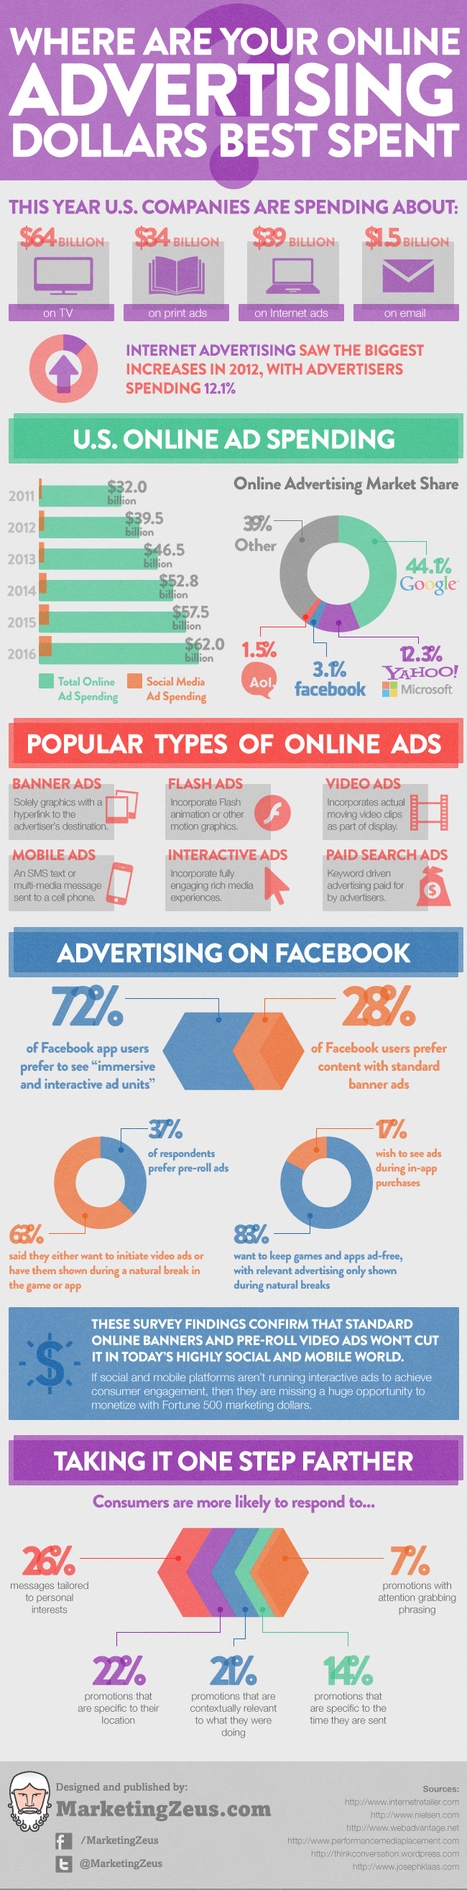 Where Are Your Online Advertising Dollars Best Spent? | Marketing & Webmarketing | Scoop.it